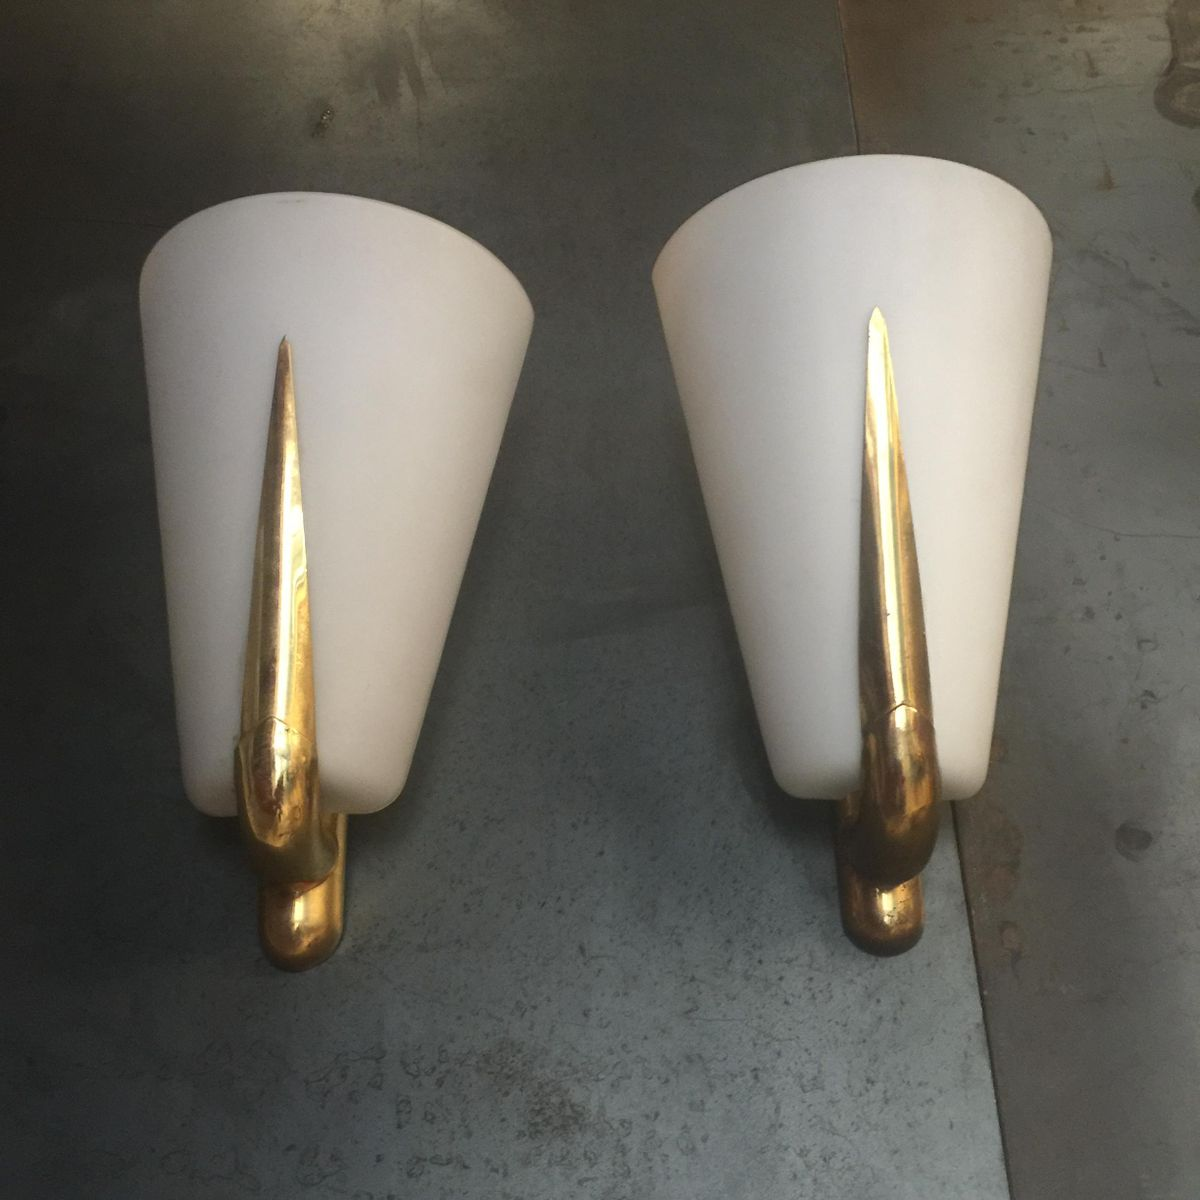 Vintage Italian Wall Sconces, Set of 2 for sale at Pamono